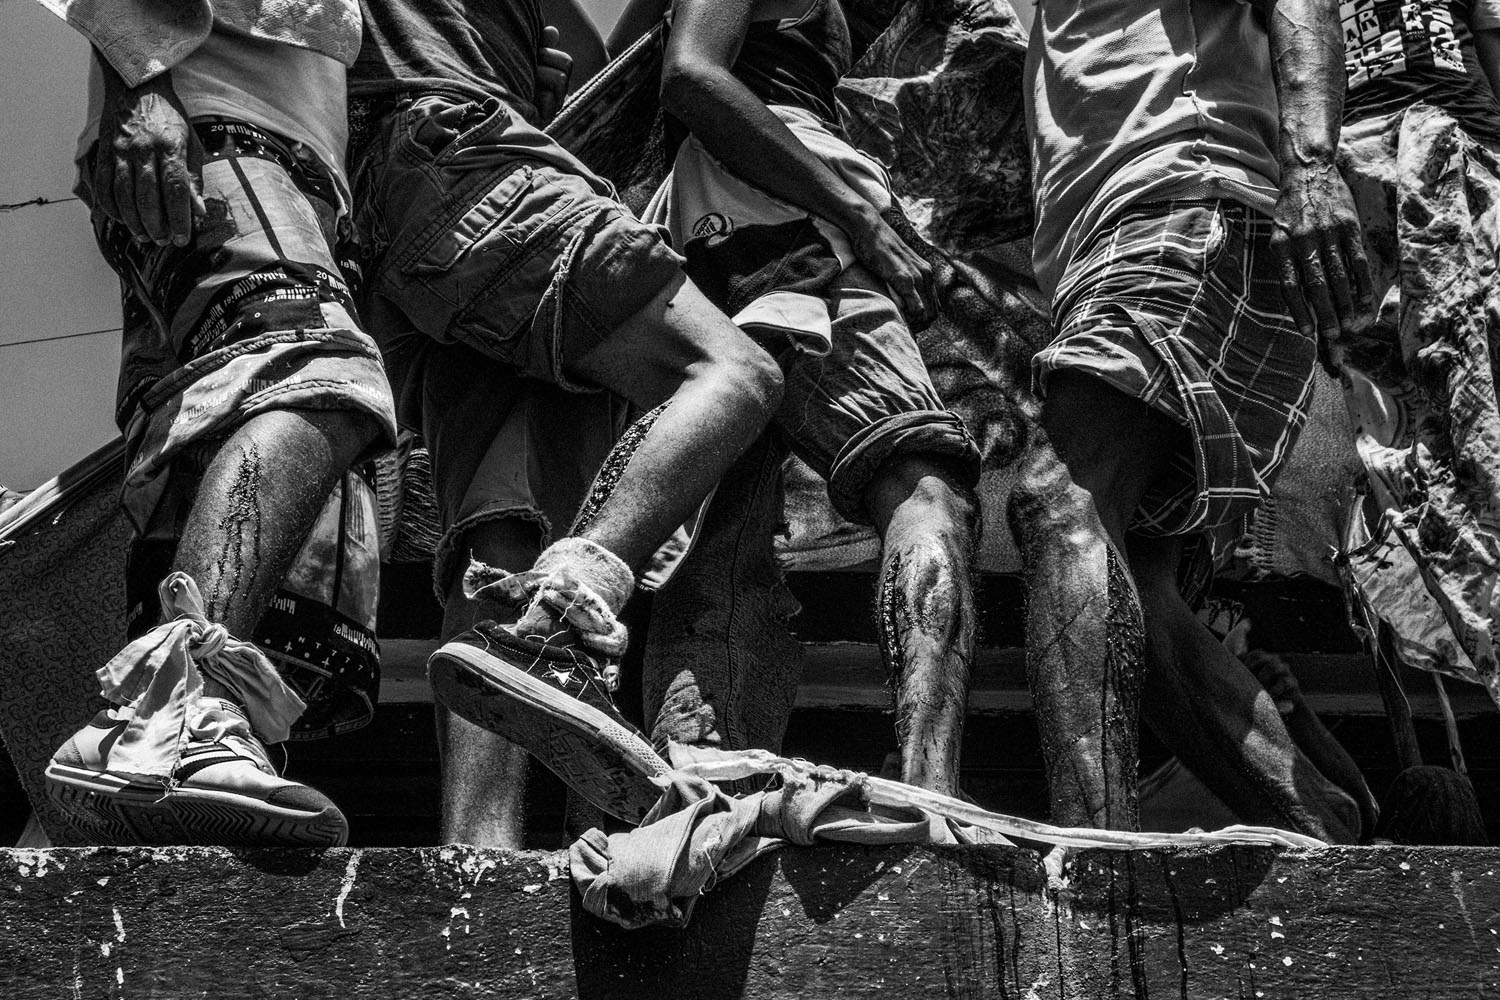 Prisoners make a blood strike on the roof to demand their transport to the capital city, Caracas.